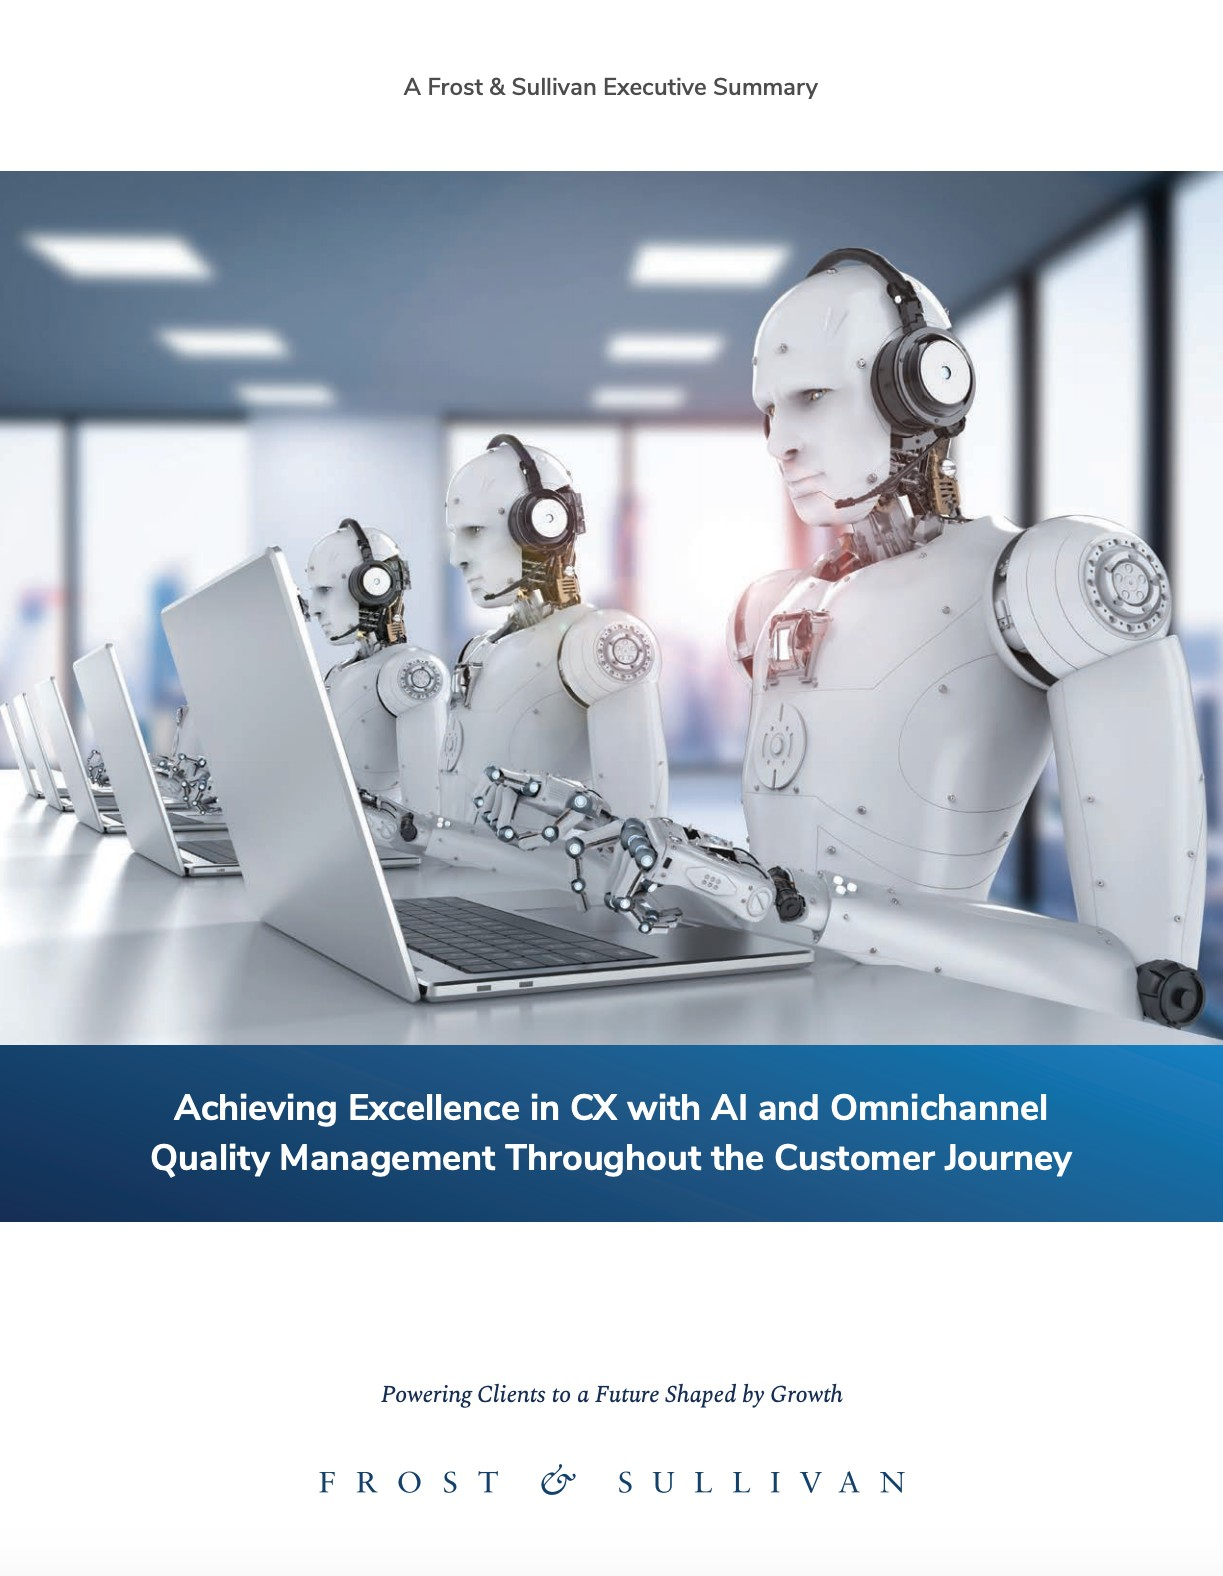 Excellence with AI and Omnichannel